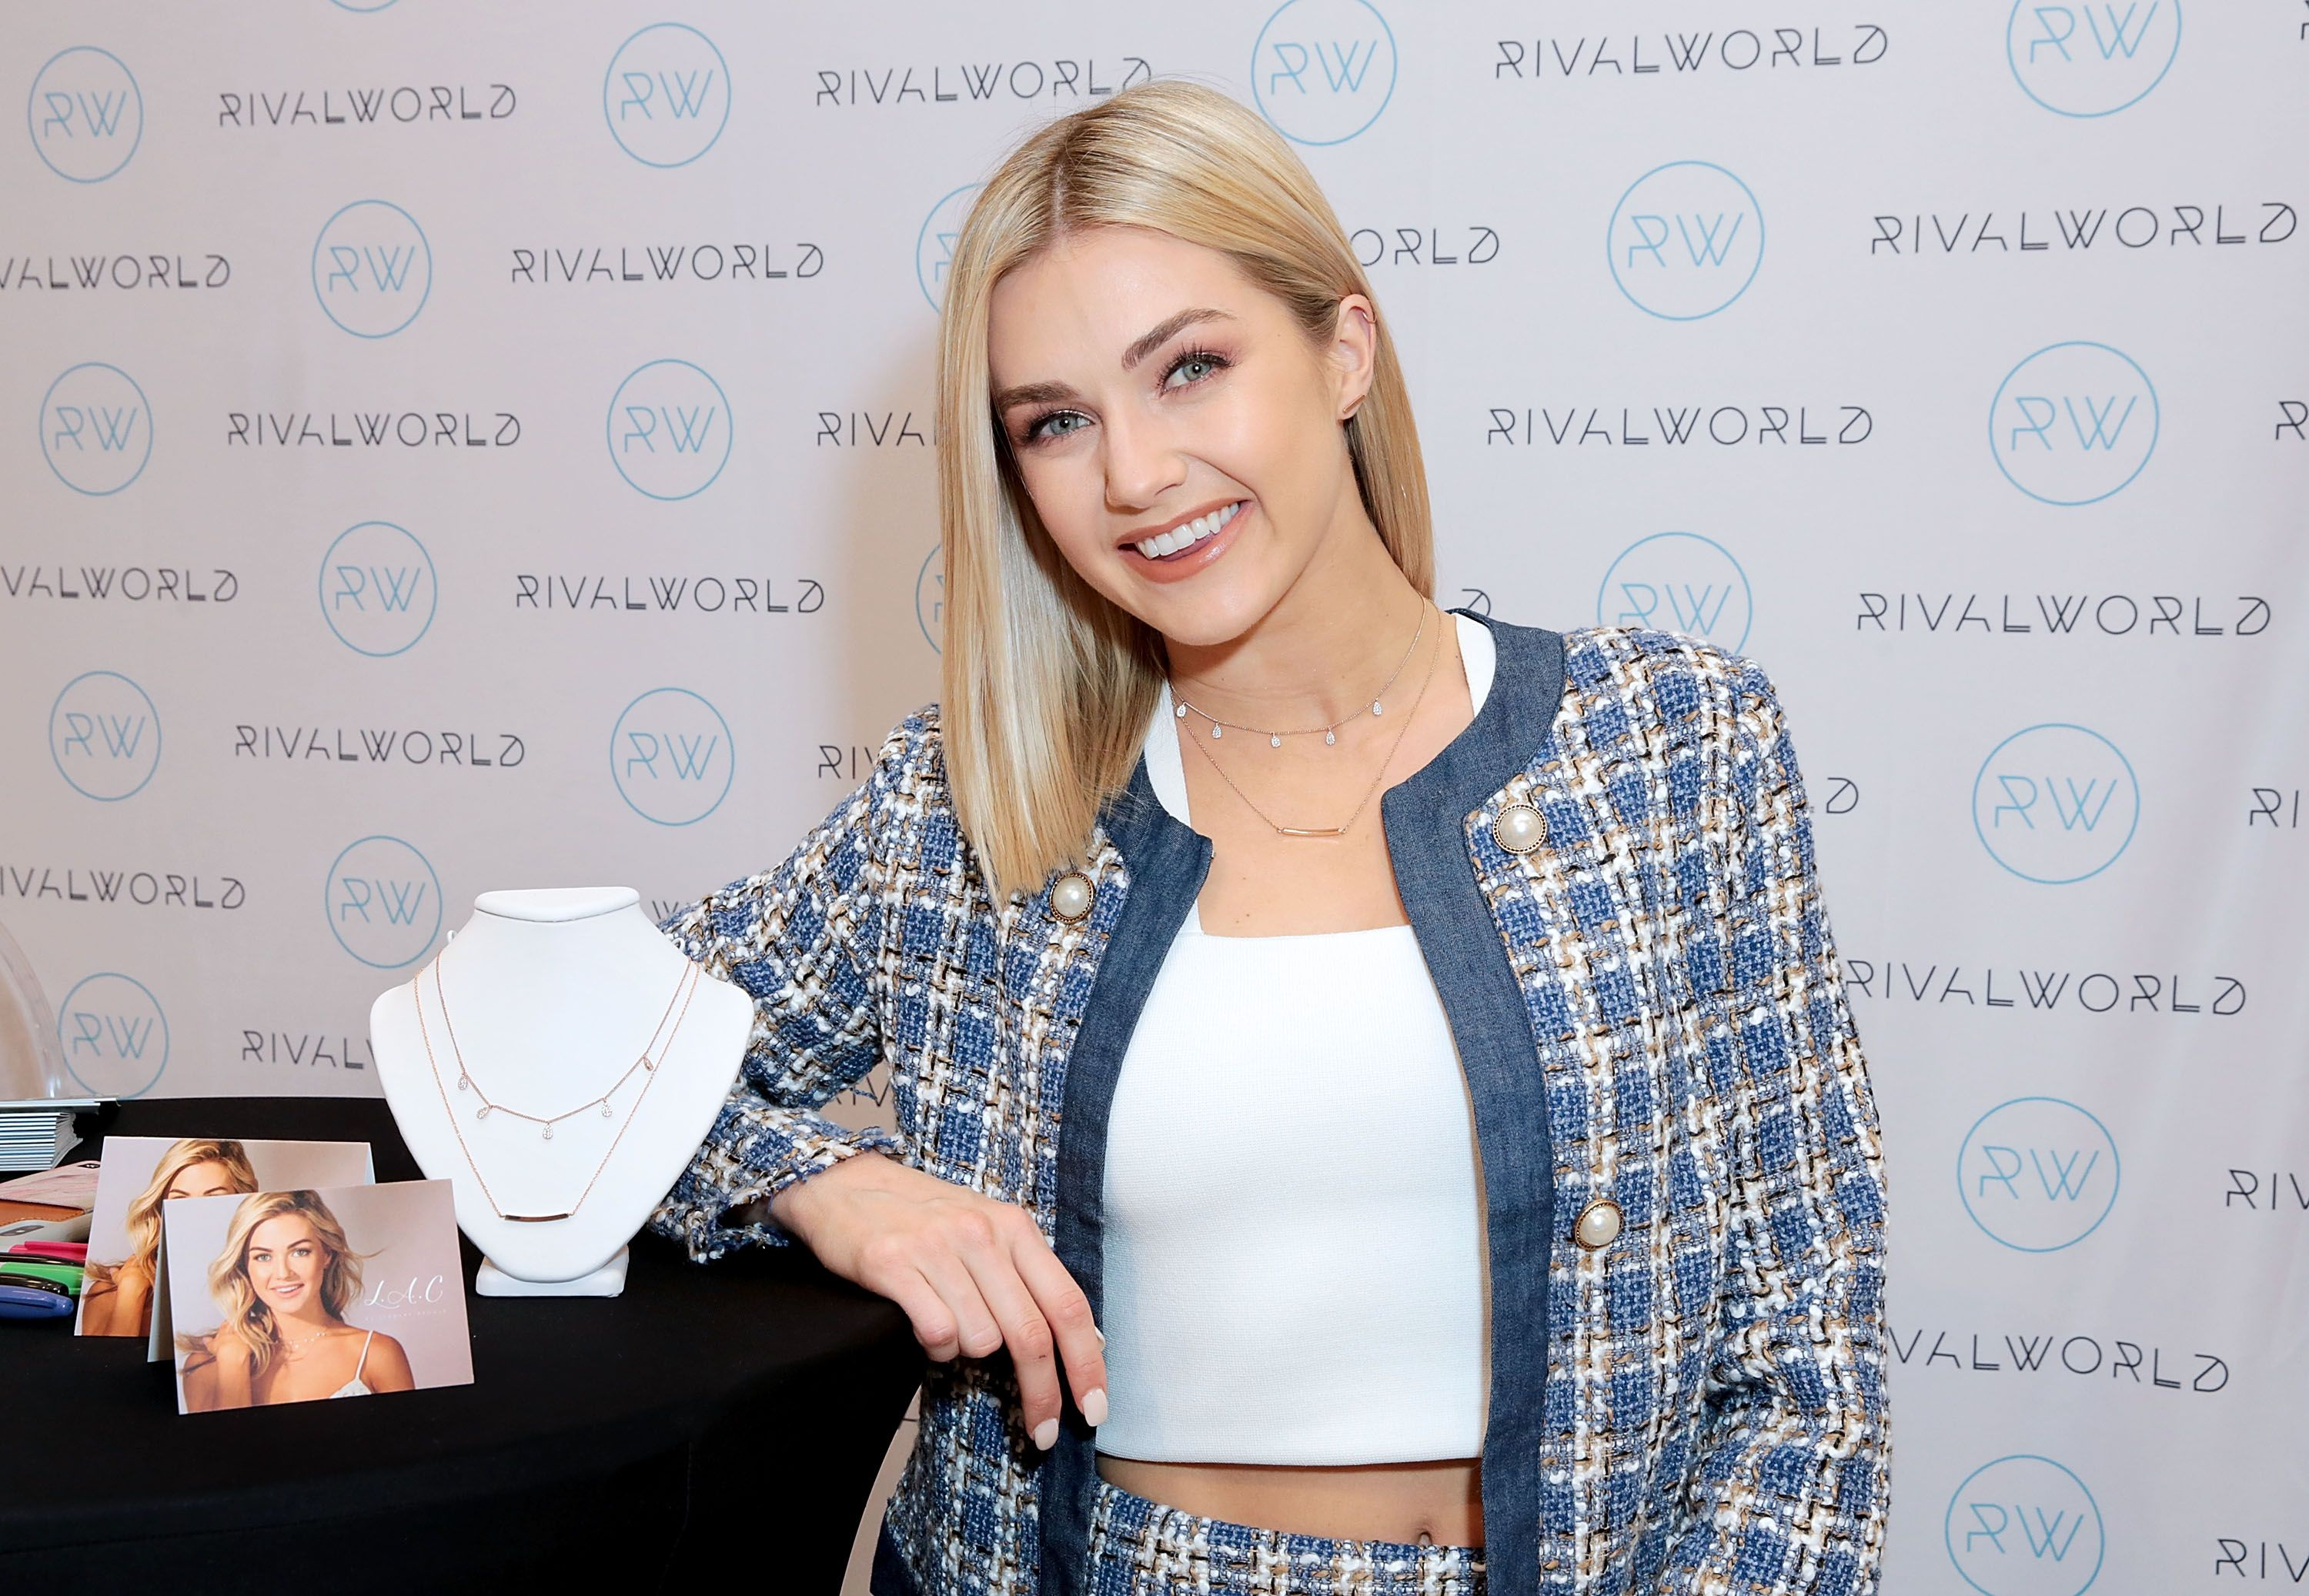 Lindsay Arnold poses with L.A.C. by Lindsay Arnold jewelry during the launch of the RivalWorld Market on February 5, 2019, in Century City, California   Photo:Rachel Murray/Getty Images